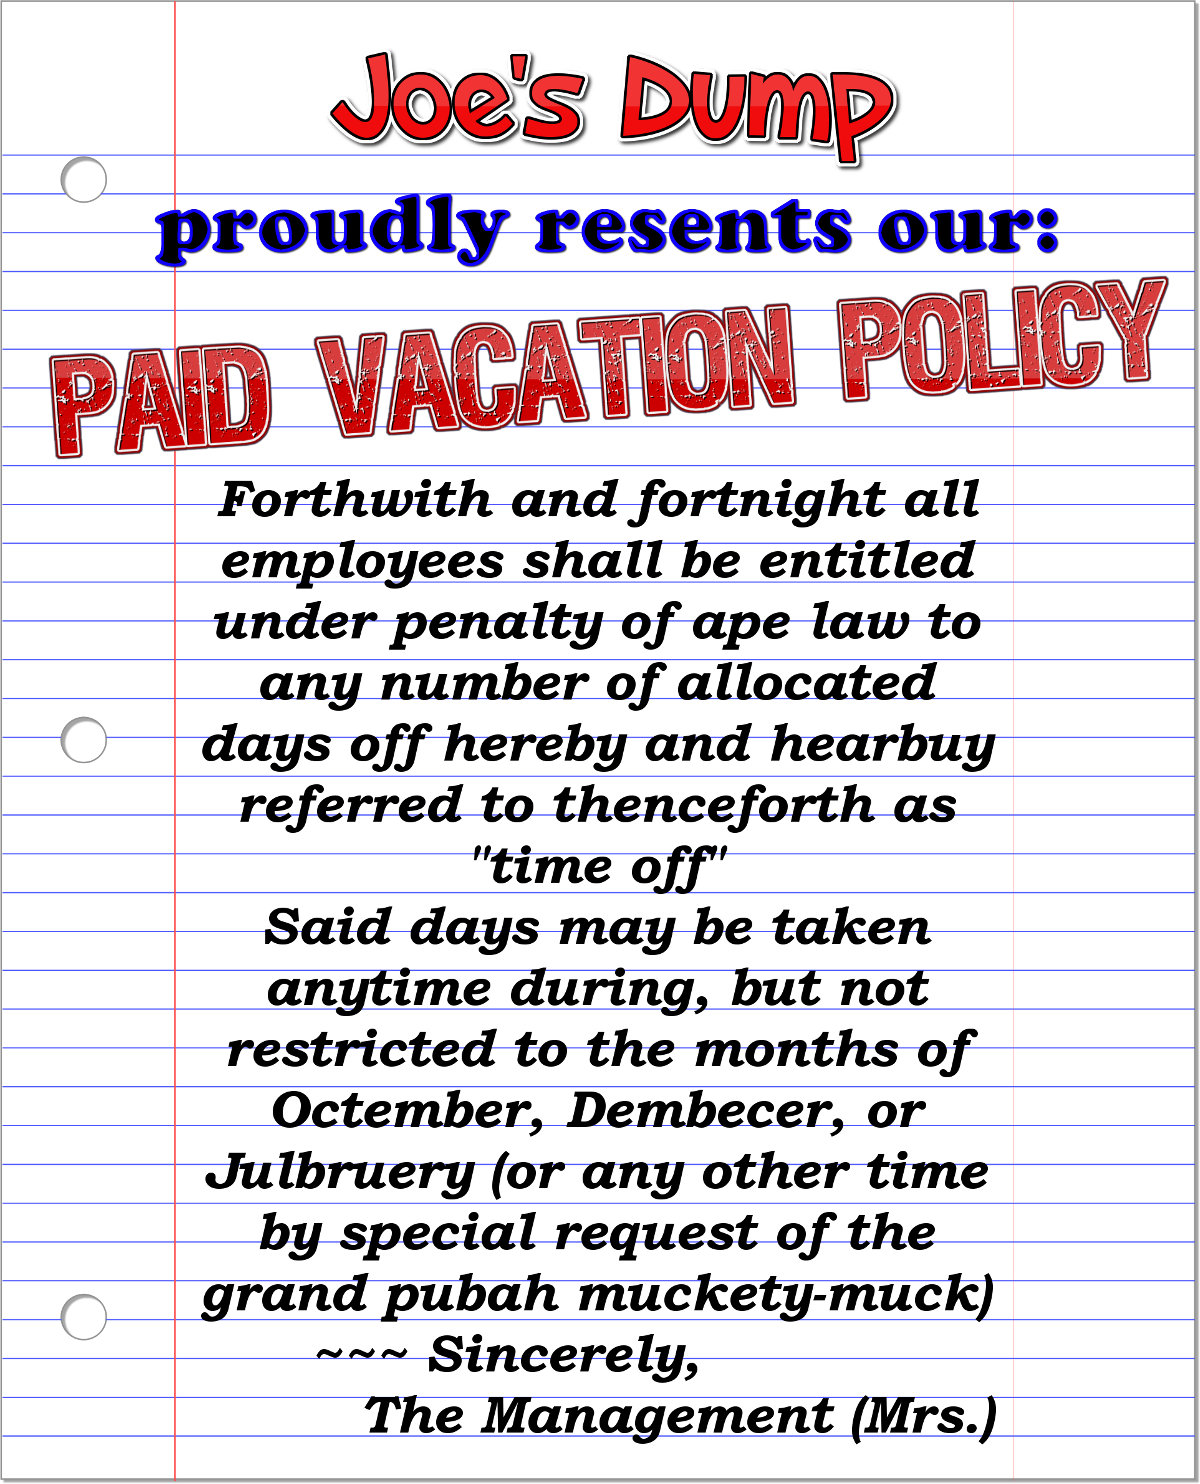 Joe's Dump: Paid Vacation Policy